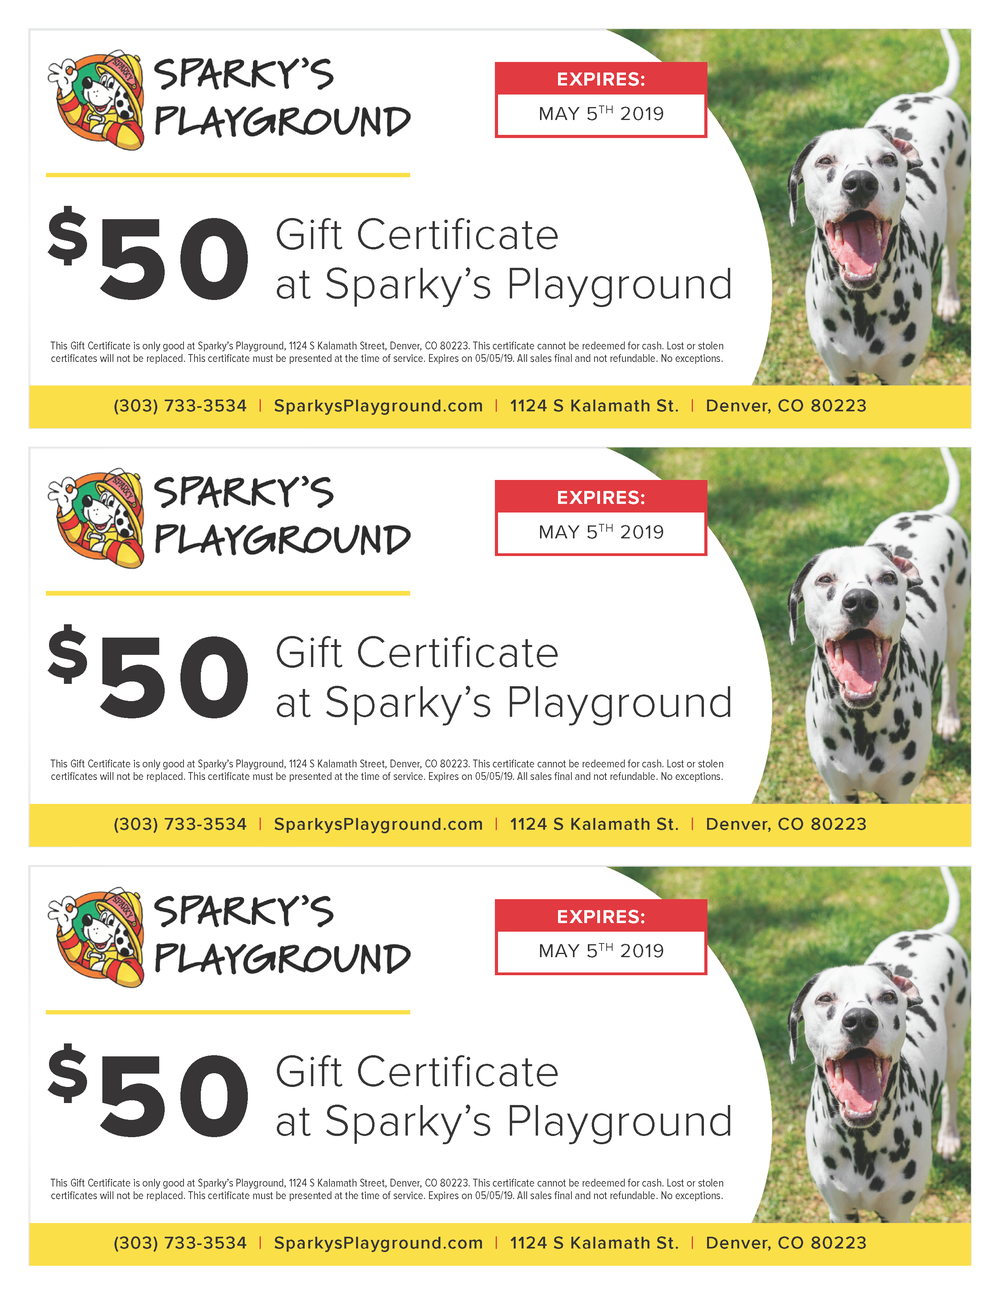 SparkysPlaygroundGiftCertificates.png